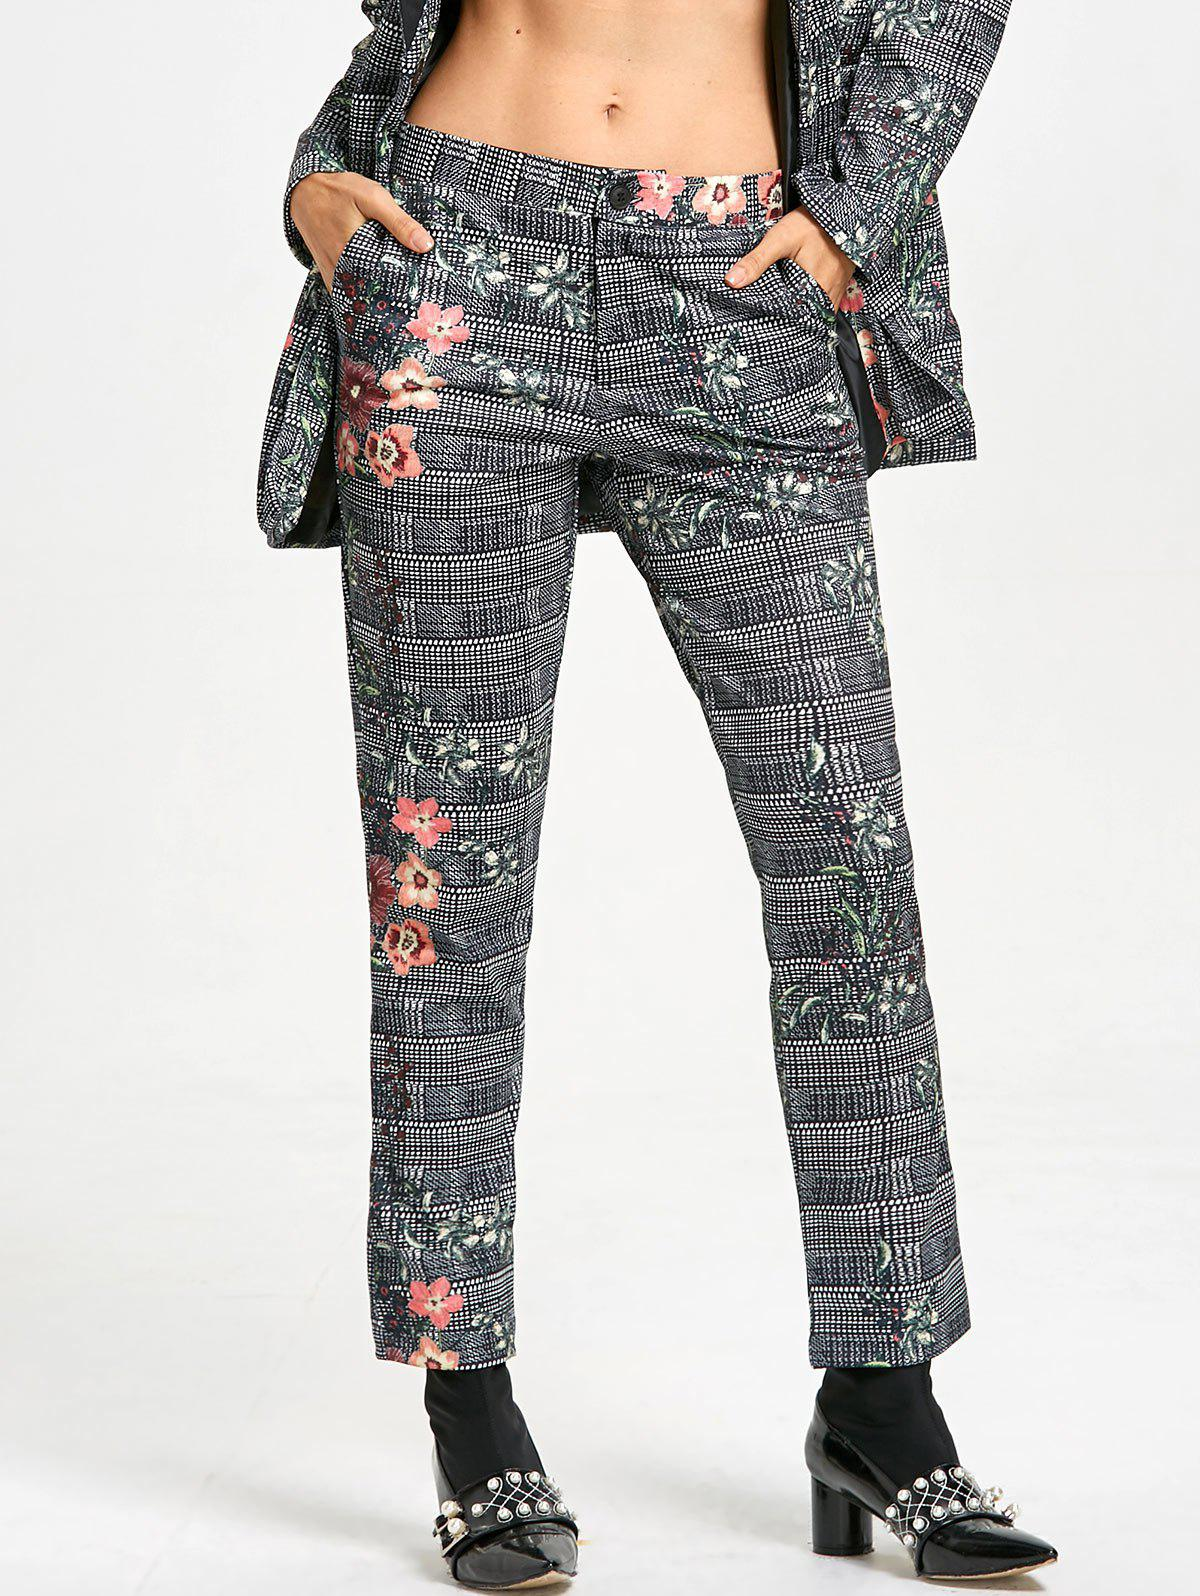 Zipper Fly Plaid Flower Print Pants - COLORMIX L